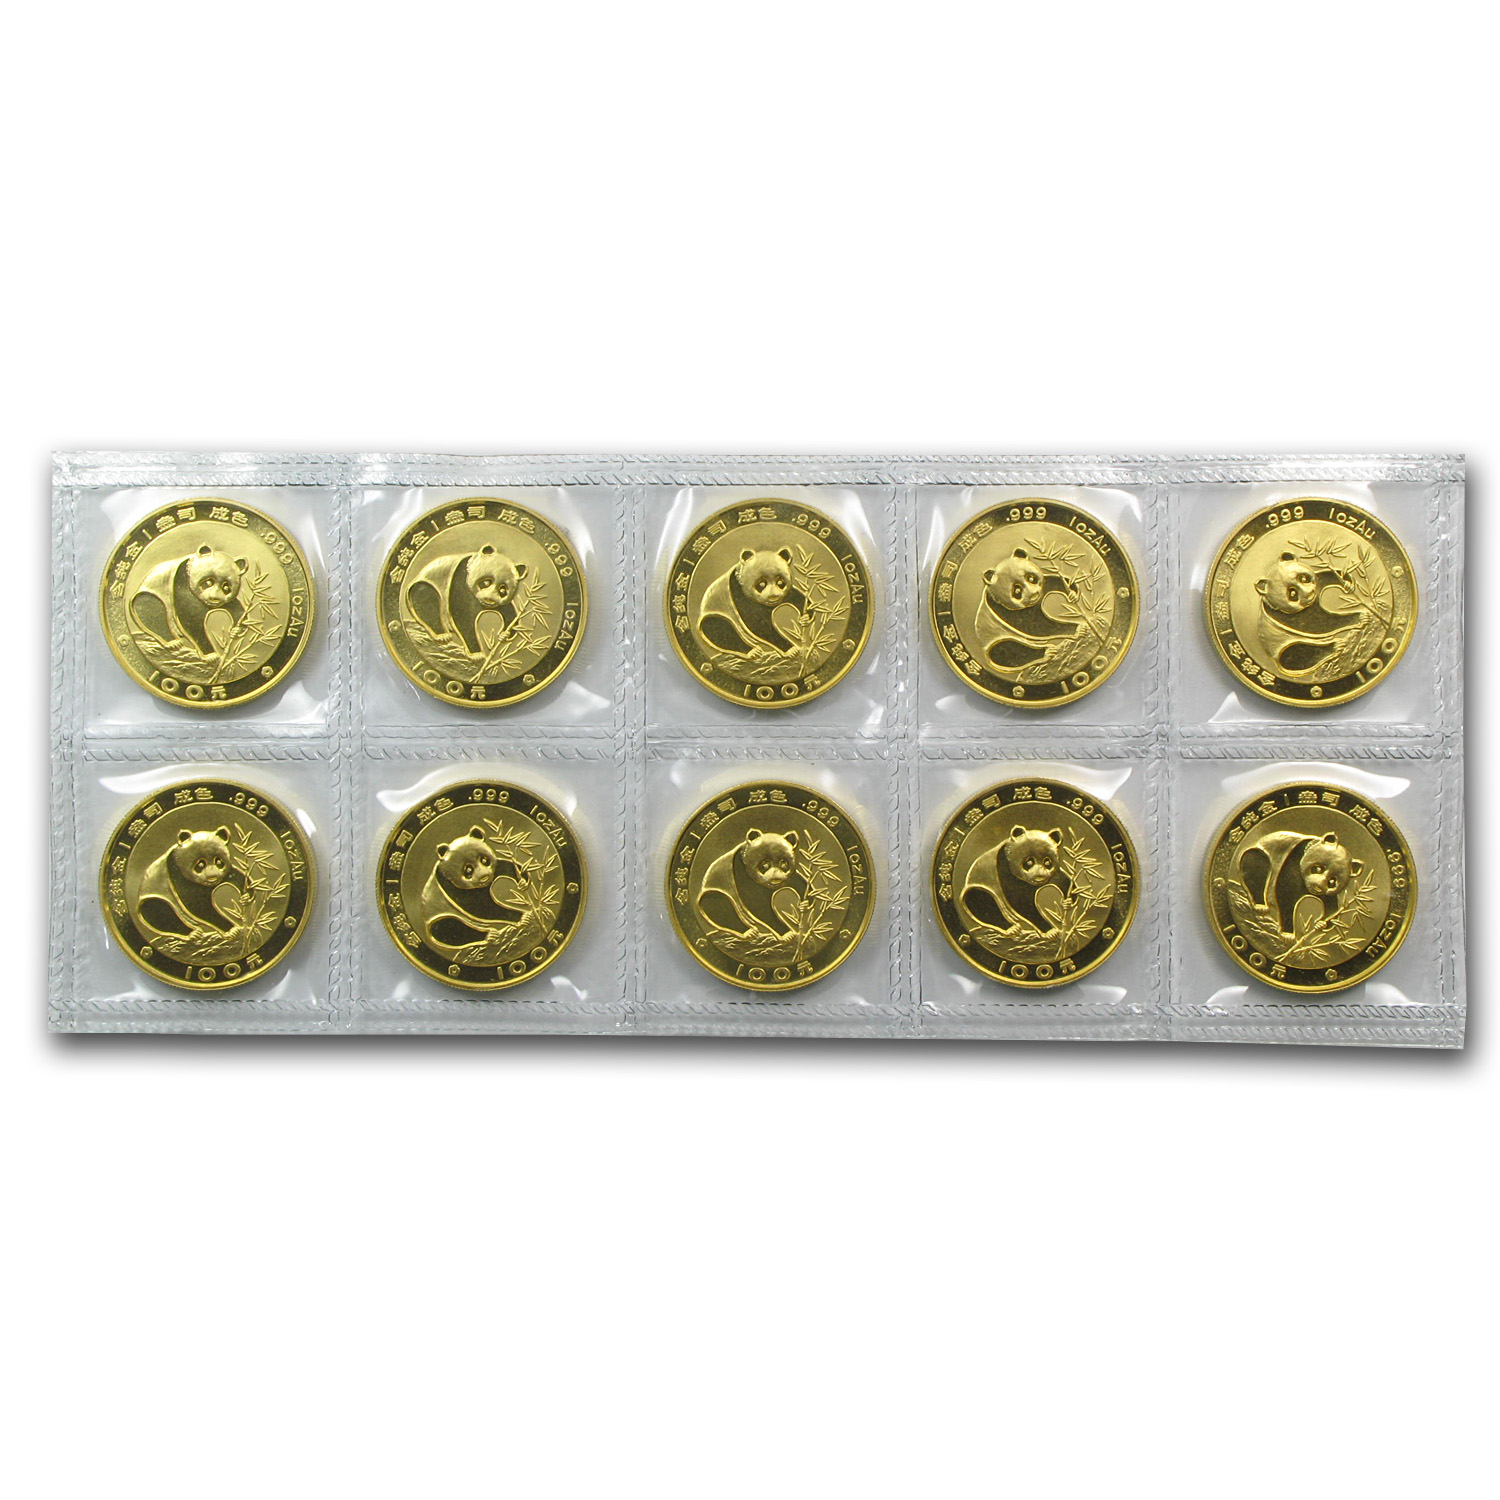 1988 1 oz Gold Chinese Panda BU (Sealed Sheet of 10)